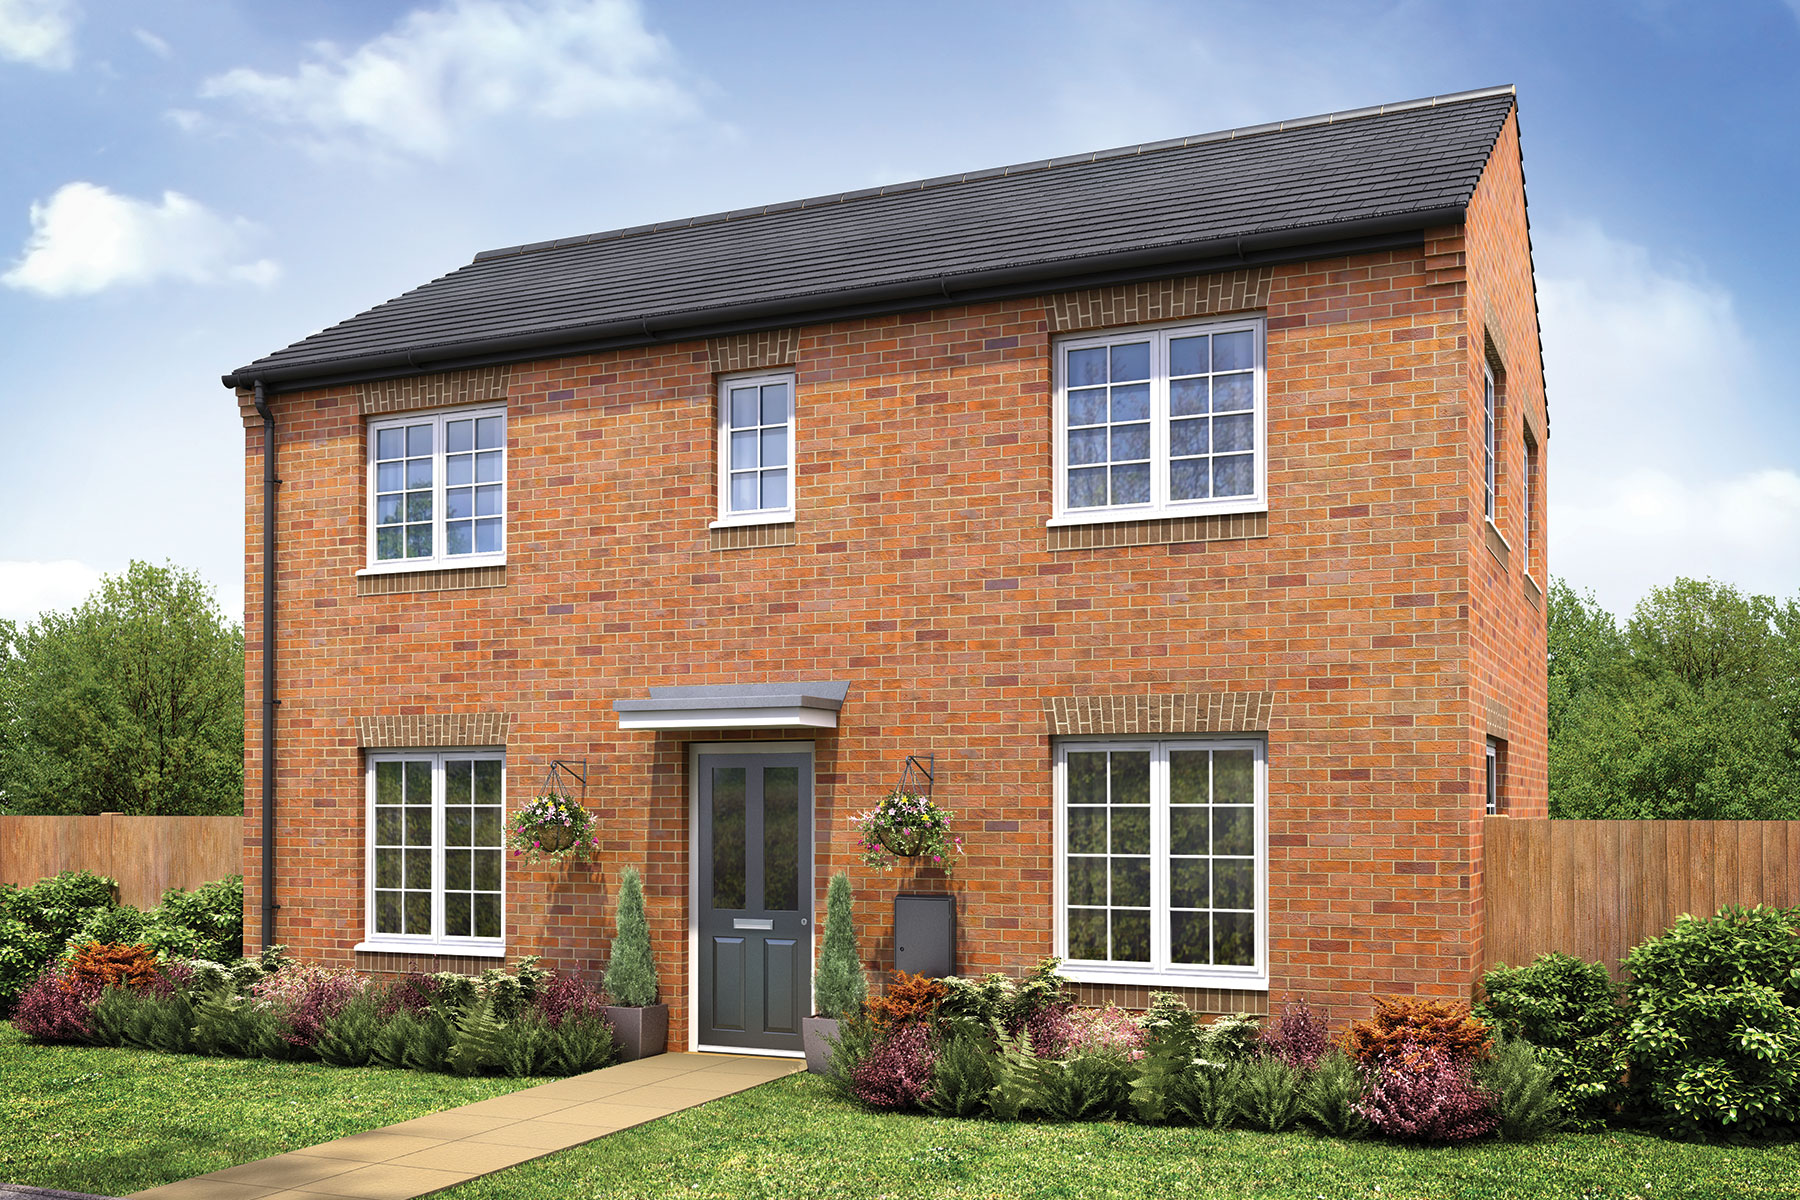 Taylor Wimpey - Xpressions - The Easedale - 4 bedroom home